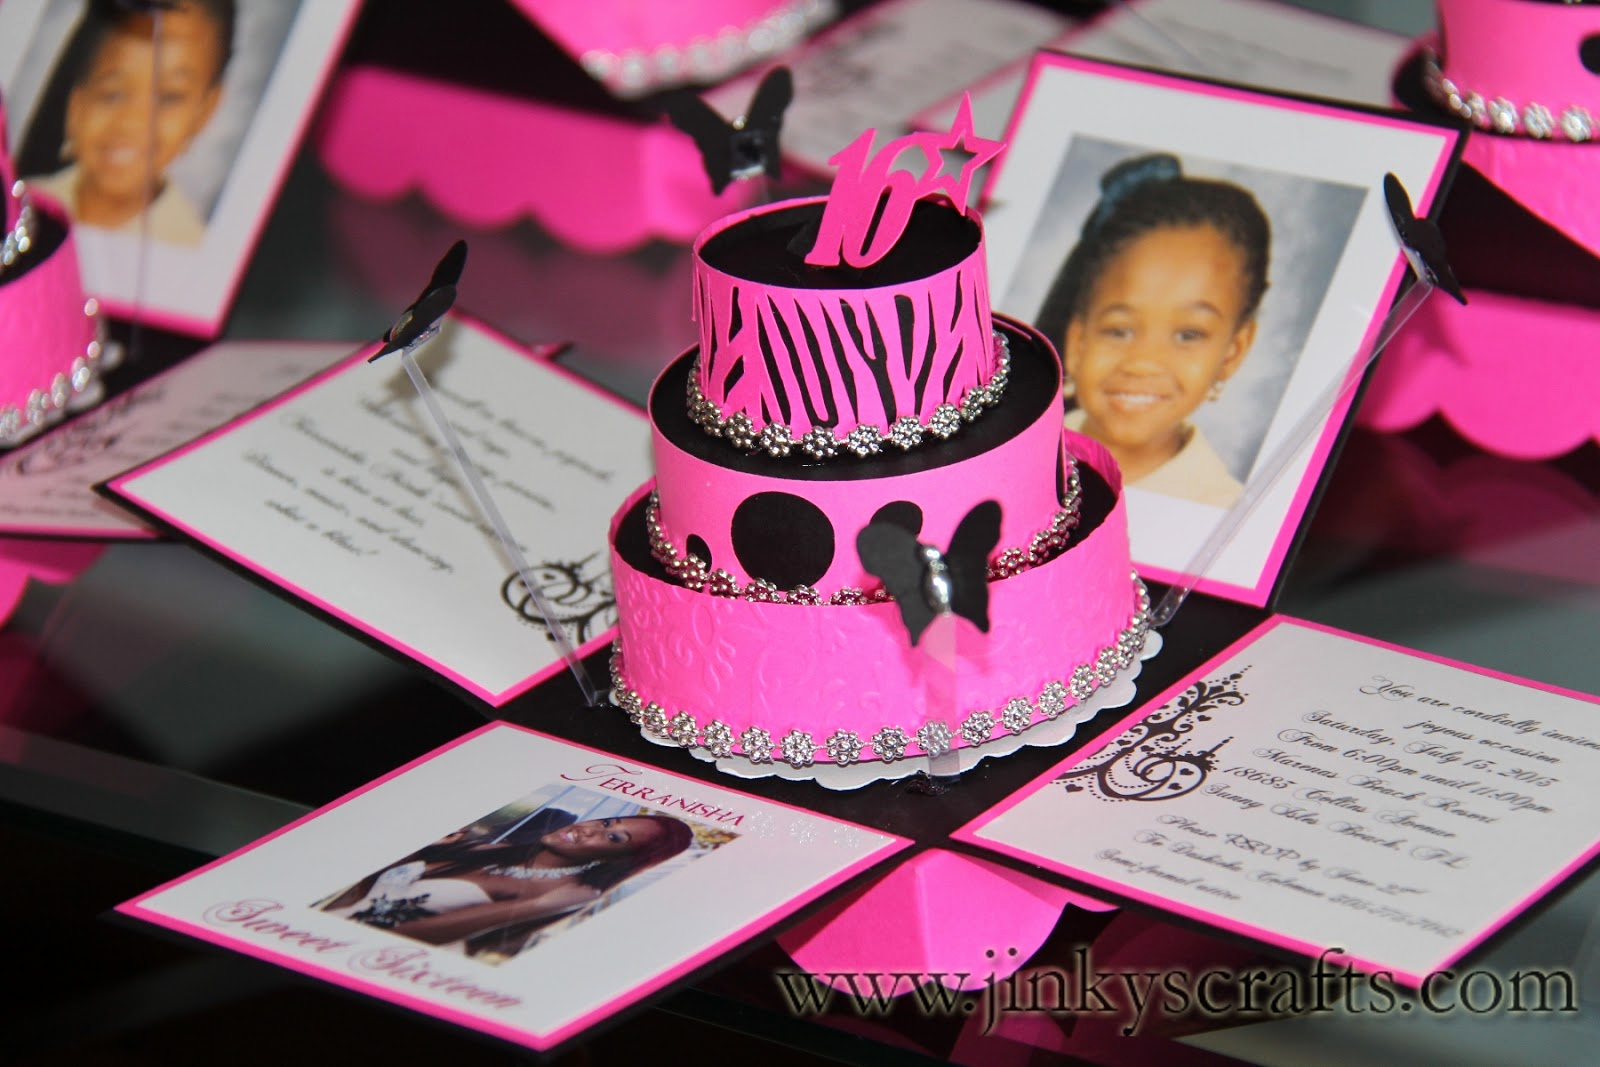 Sweet 16 Invitation Ideas Unique Jinky S Crafts & Designs Hot Pink Zebra Print Cakes Invites